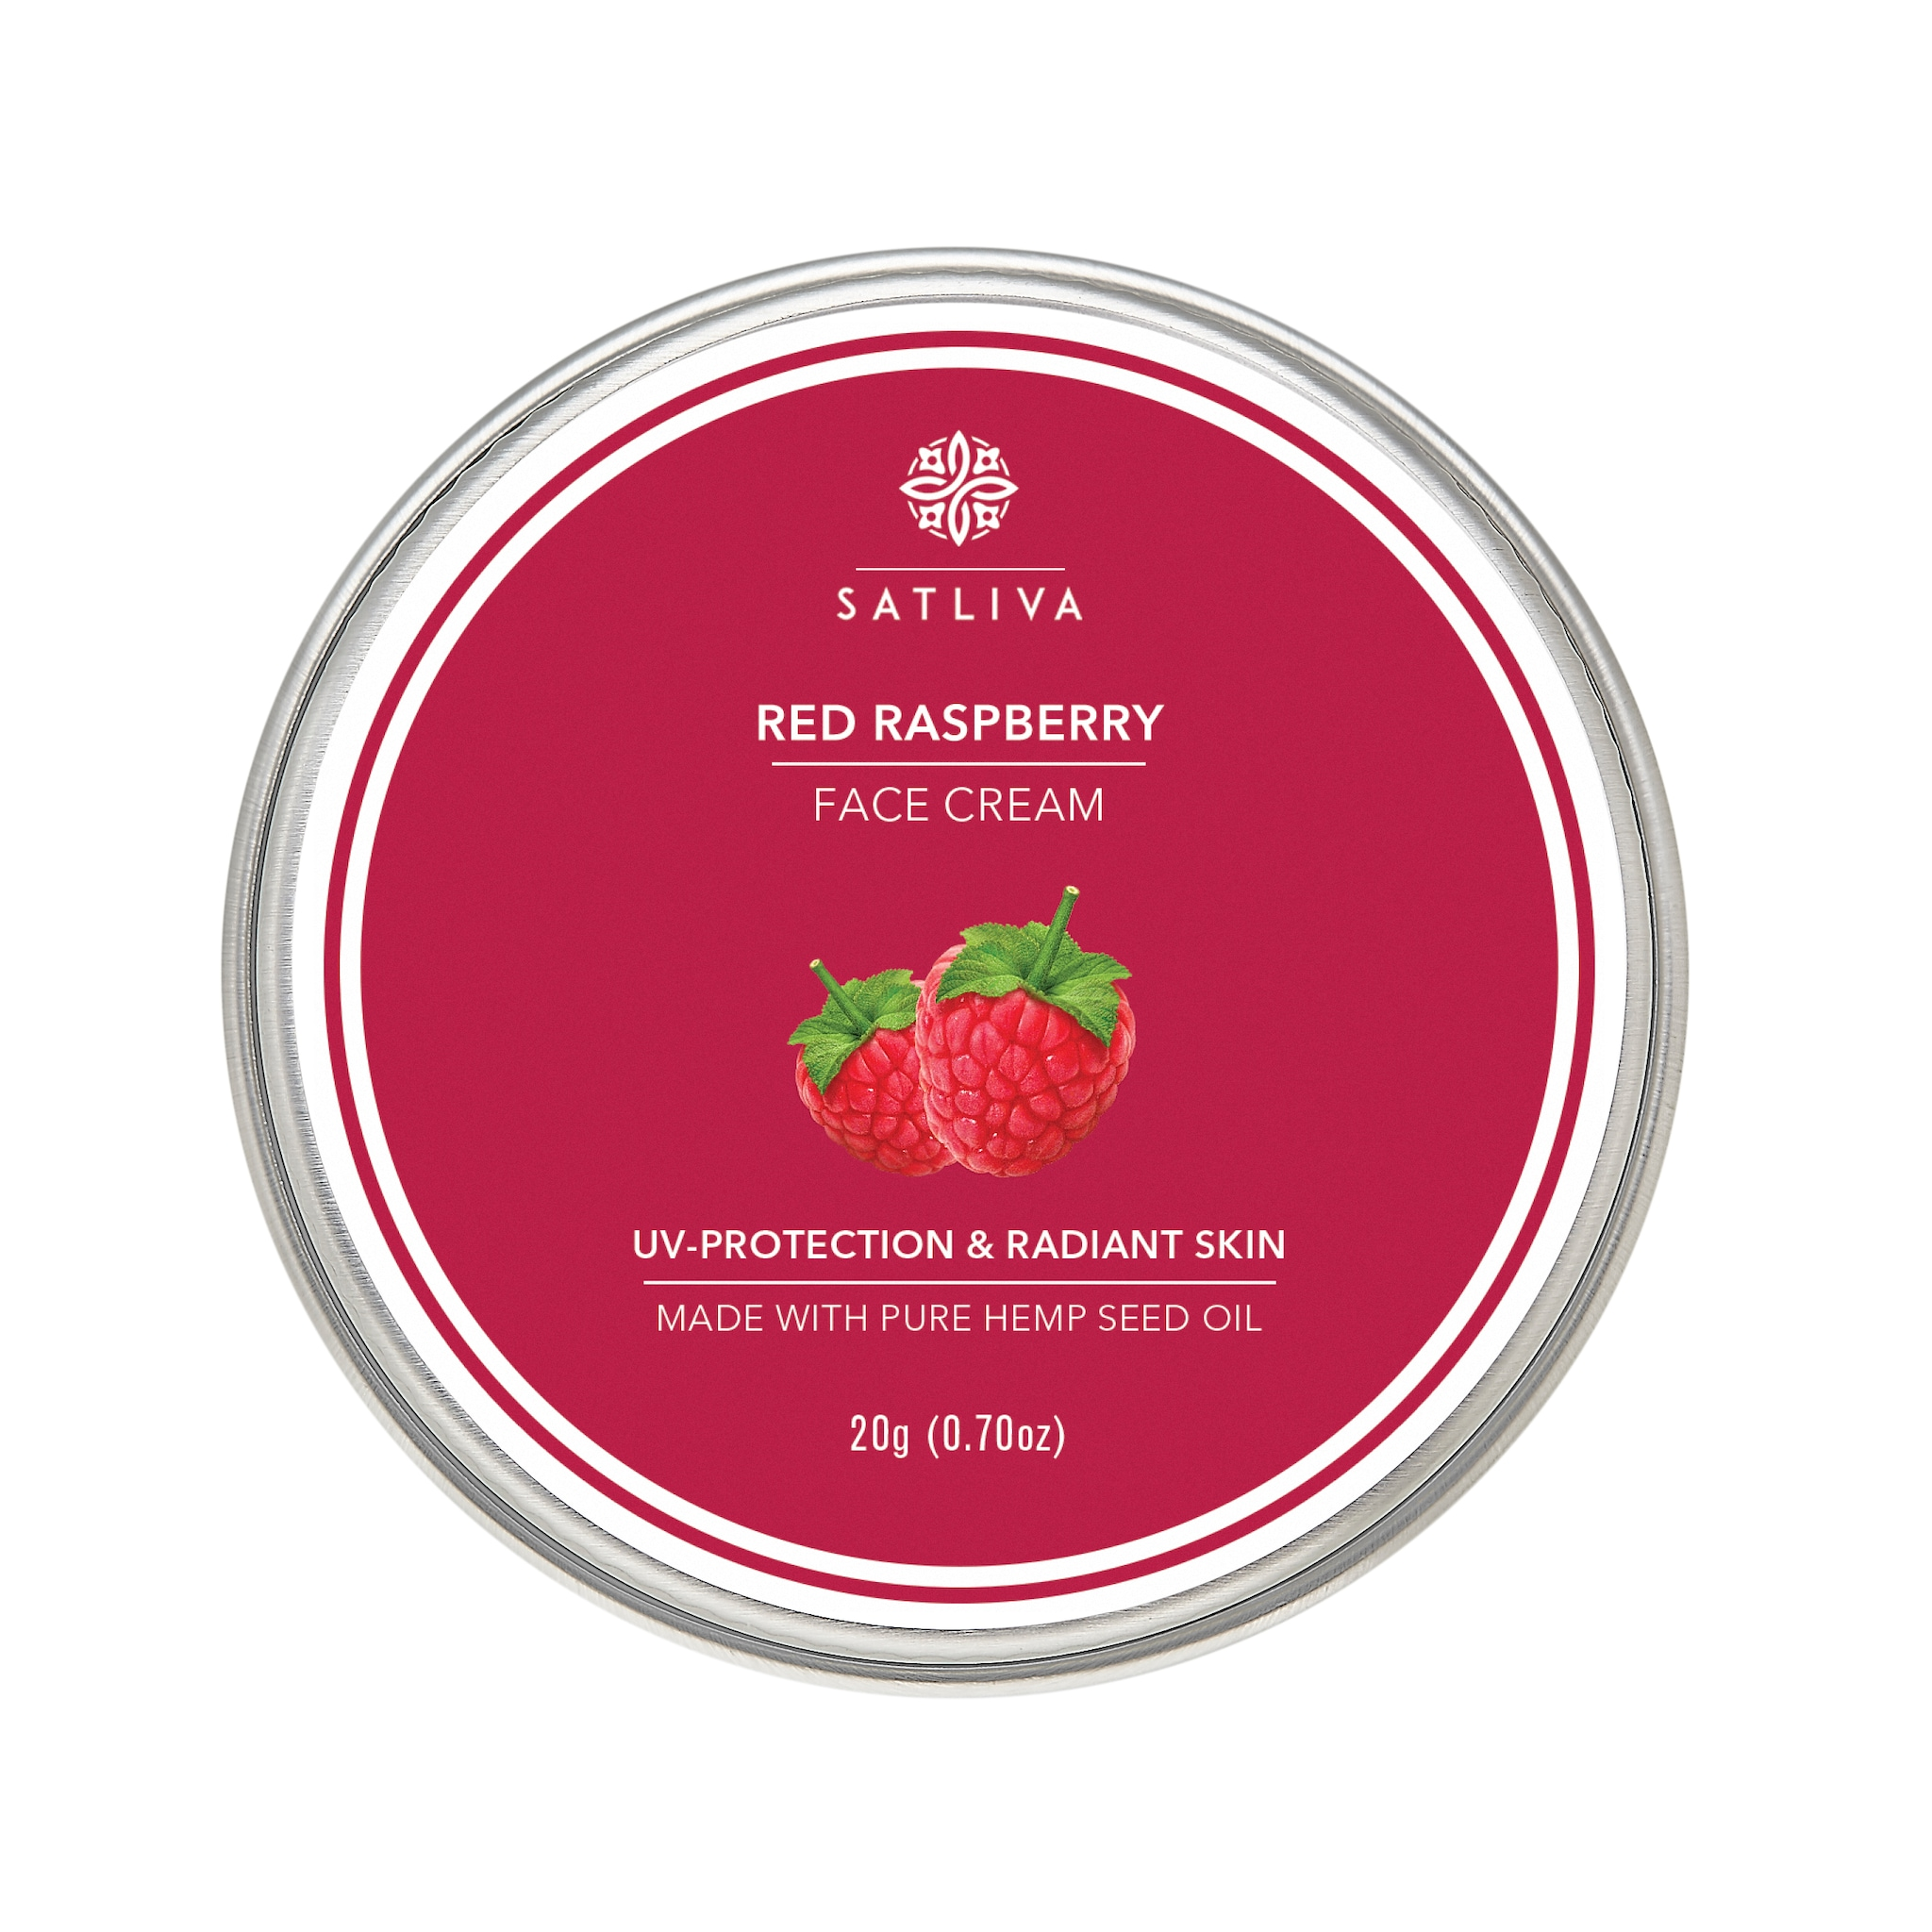 Satliva Red Raspberry Face Cream (20g)